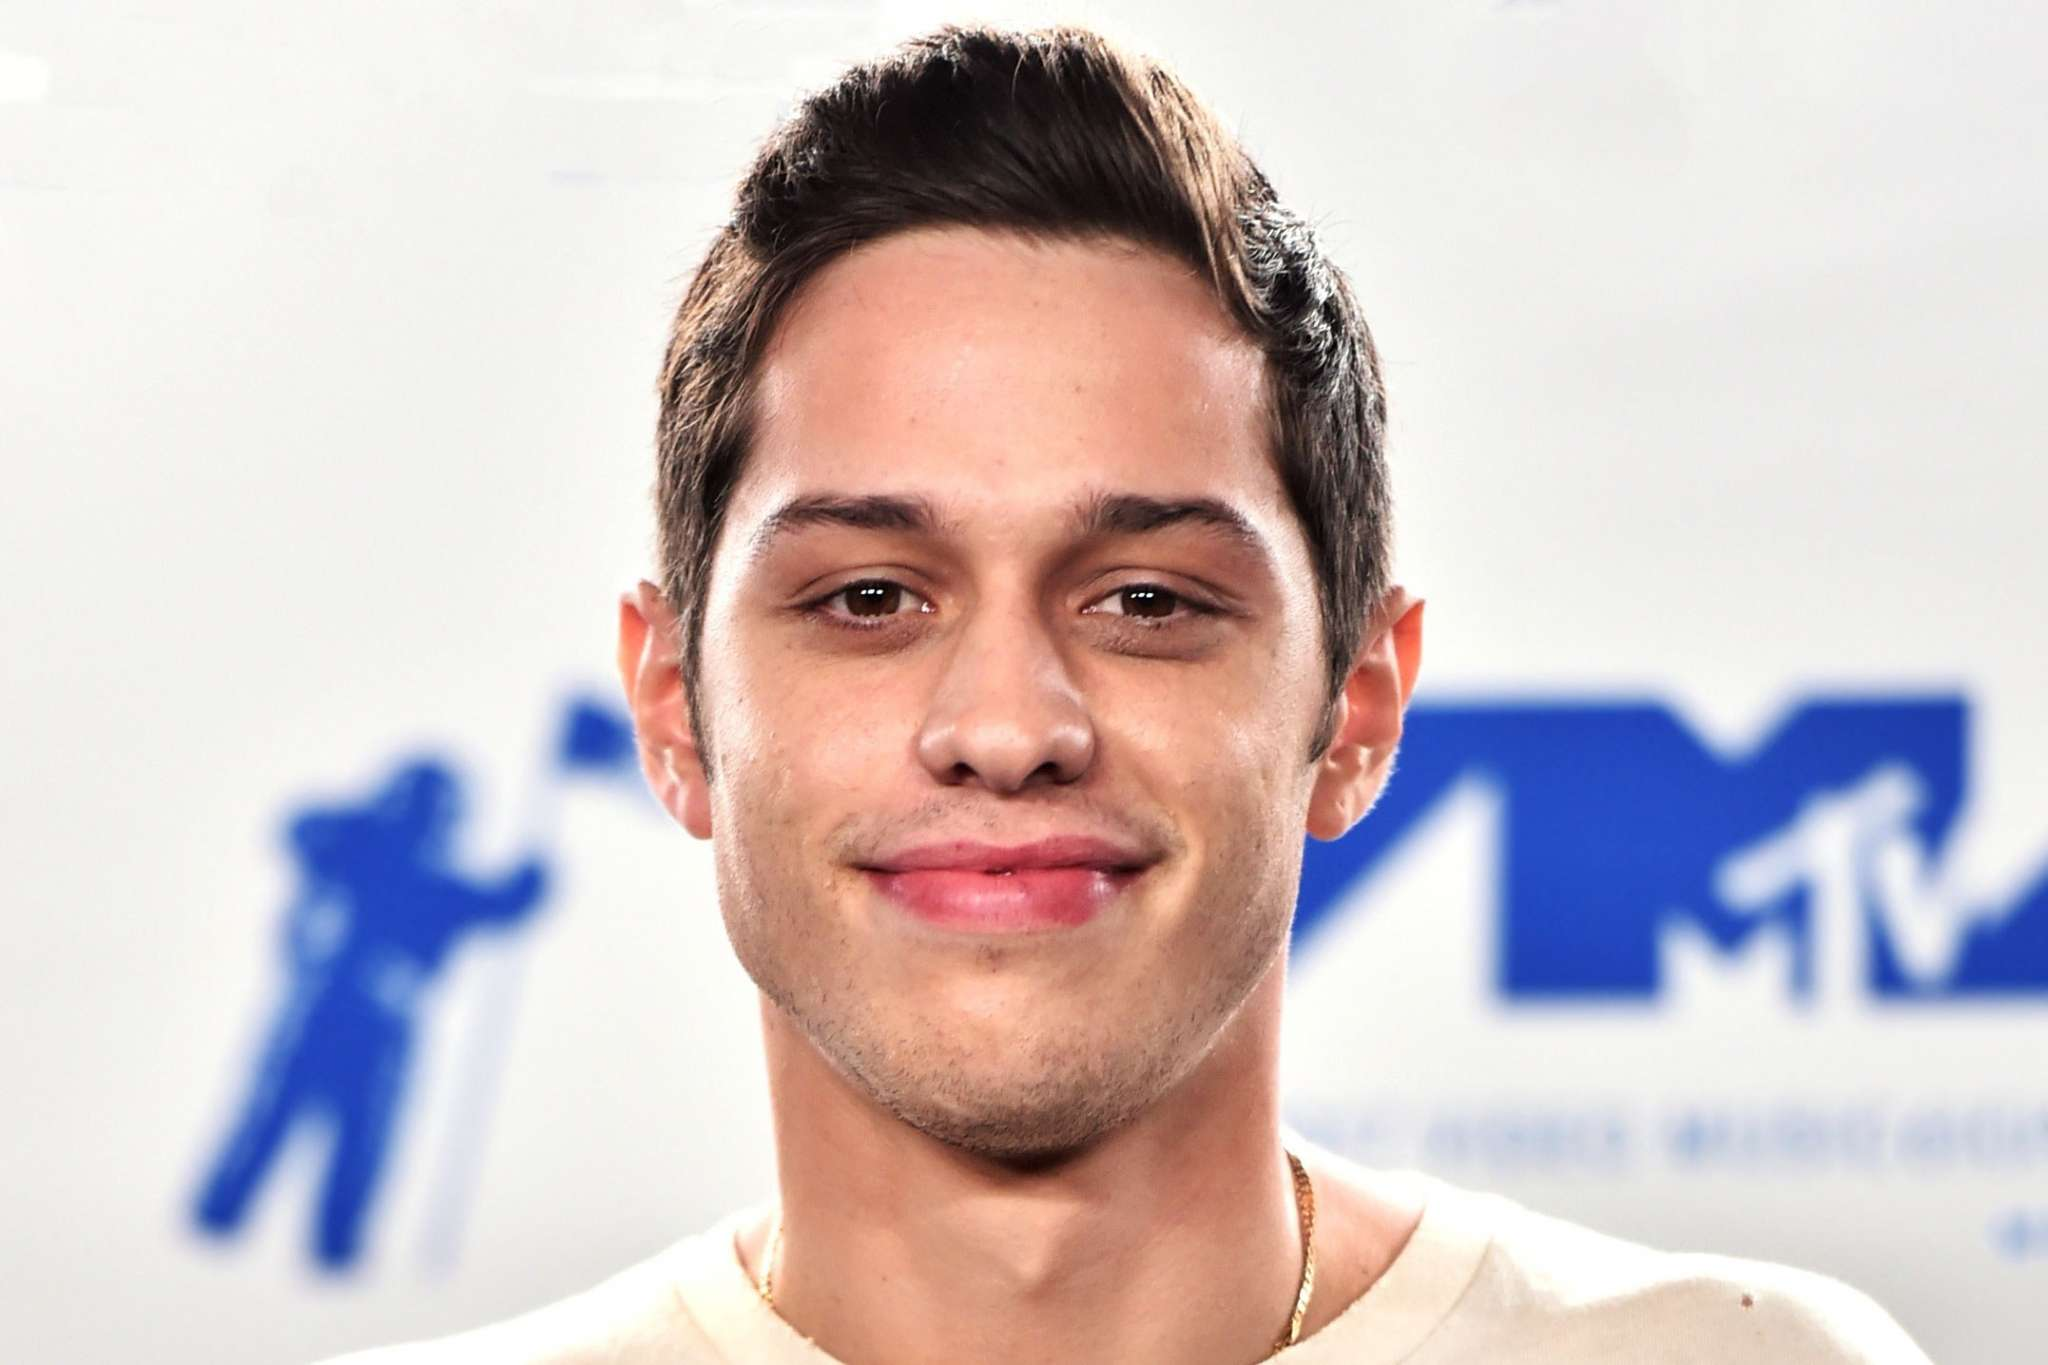 Pete Davidson's Fans Will Be Happy To Know That He's Doing Fine After Scaring Everyone With Suicidal Message